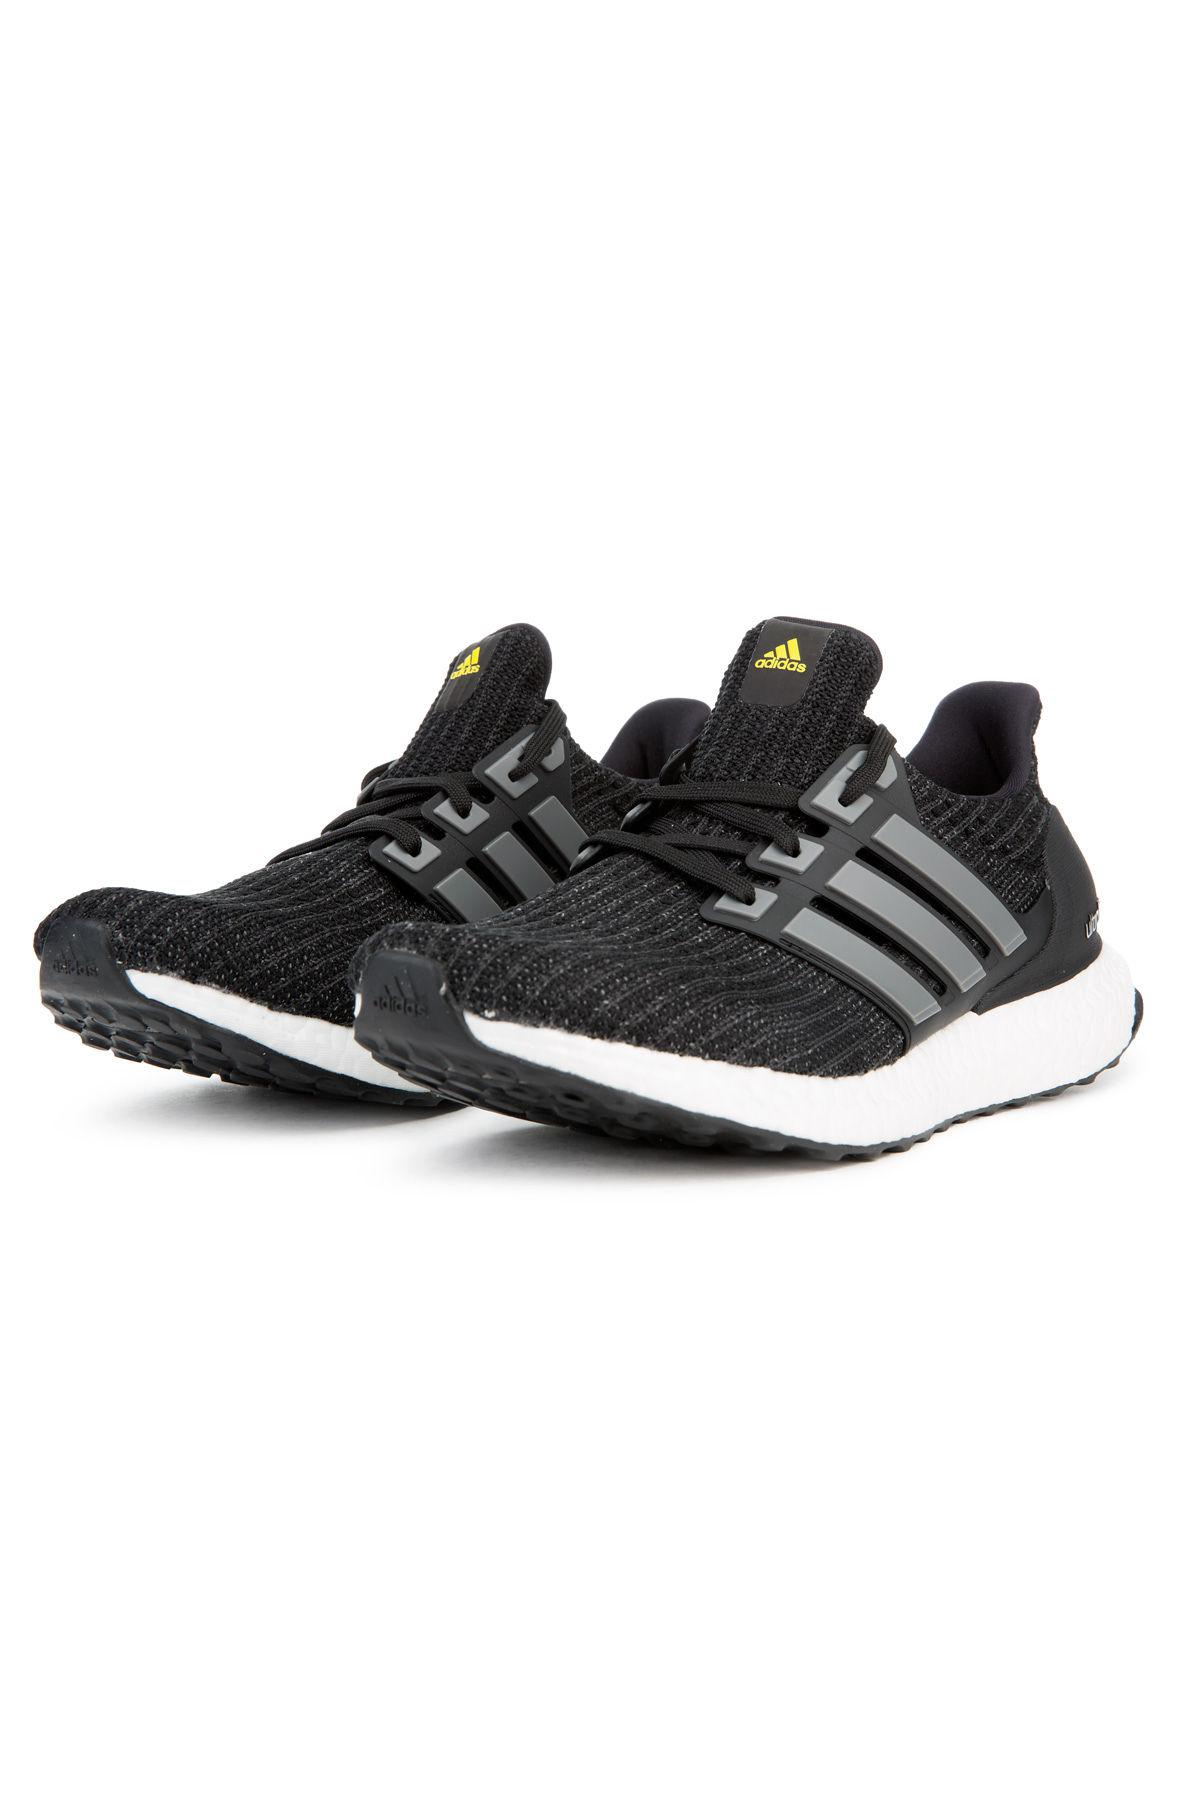 adidas performance men's ultra boost ltd running shoe